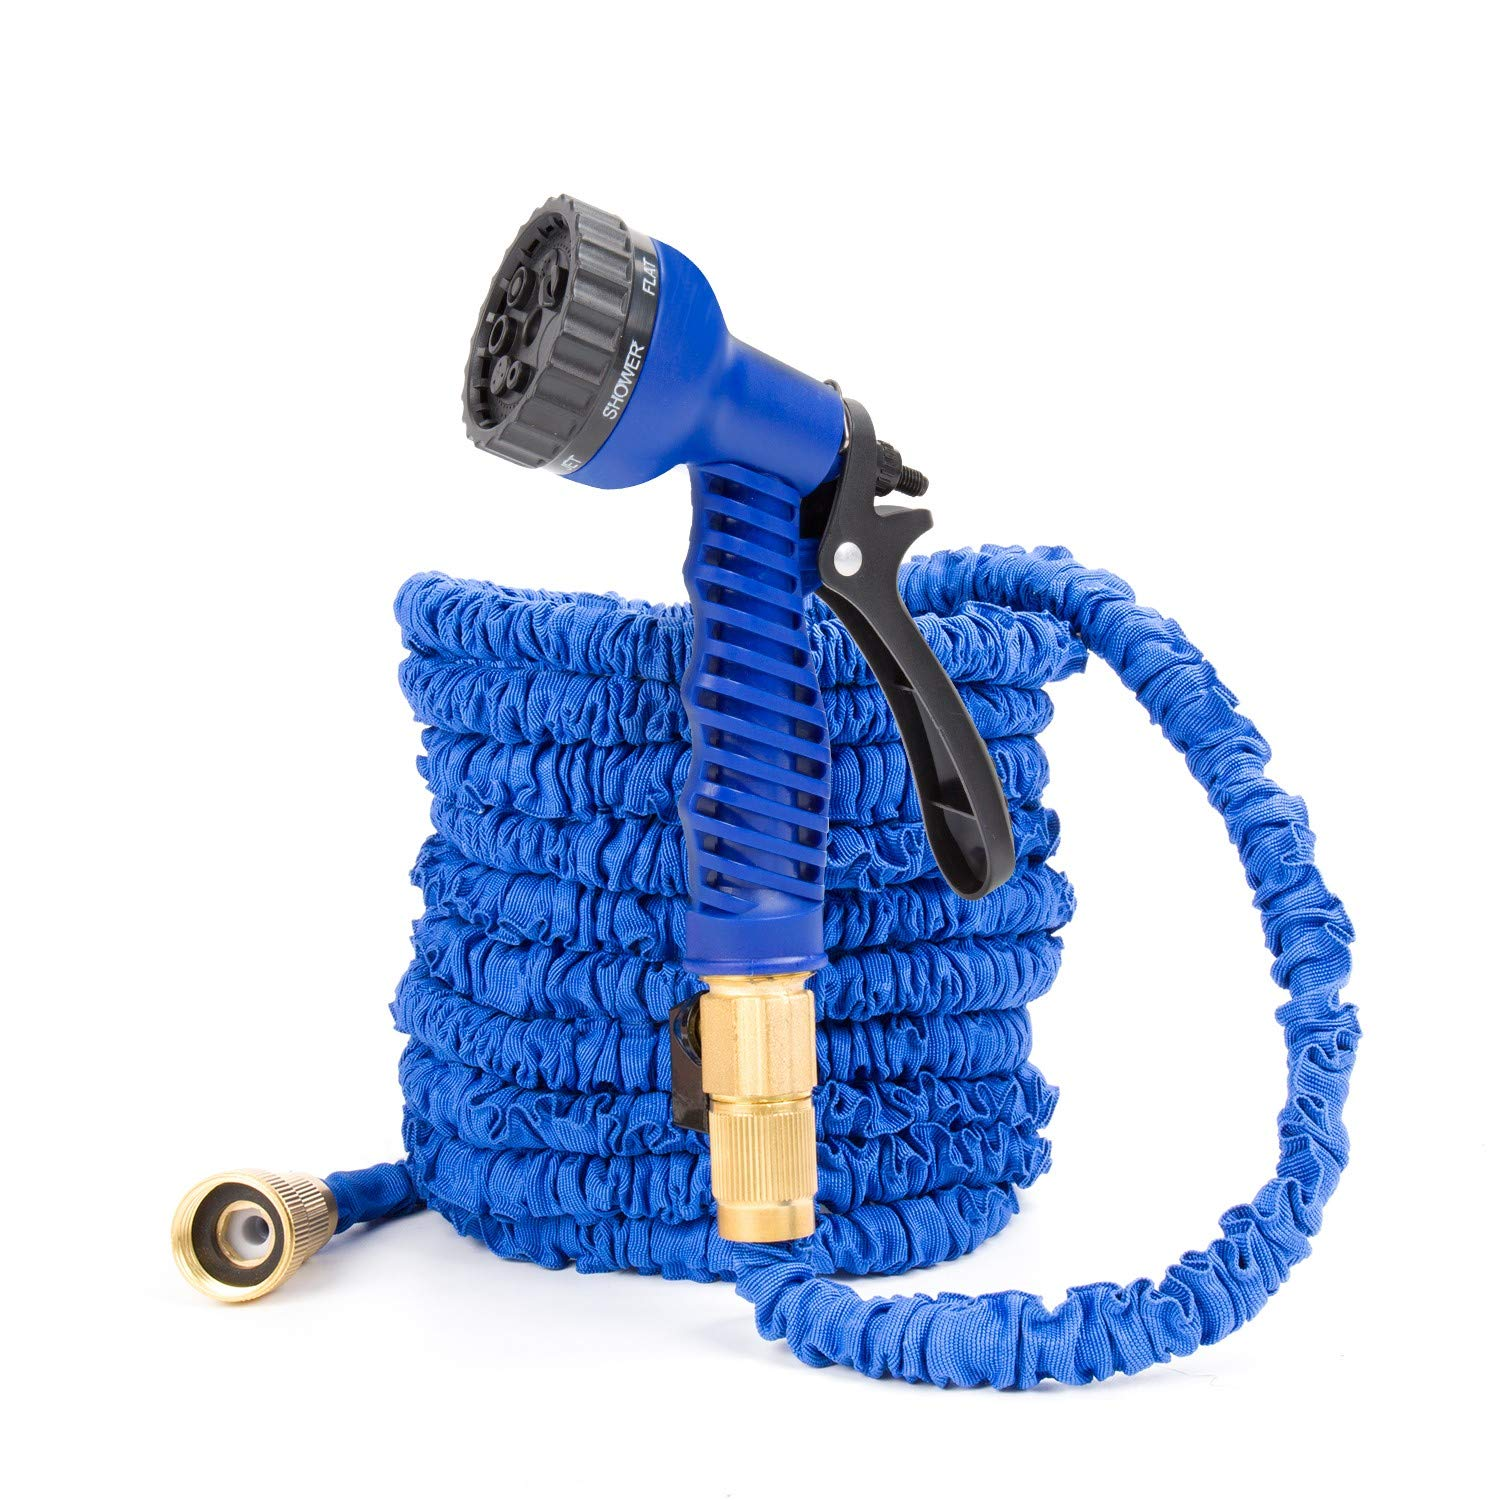 Homsoph Garden Hose, Expandable Hose, Orbit sprinklers, Colapsable Hose Heavy Duty, 50ft, As seen on tv, Ideal for Gardening, Plant & Lawn Watering [Blue]